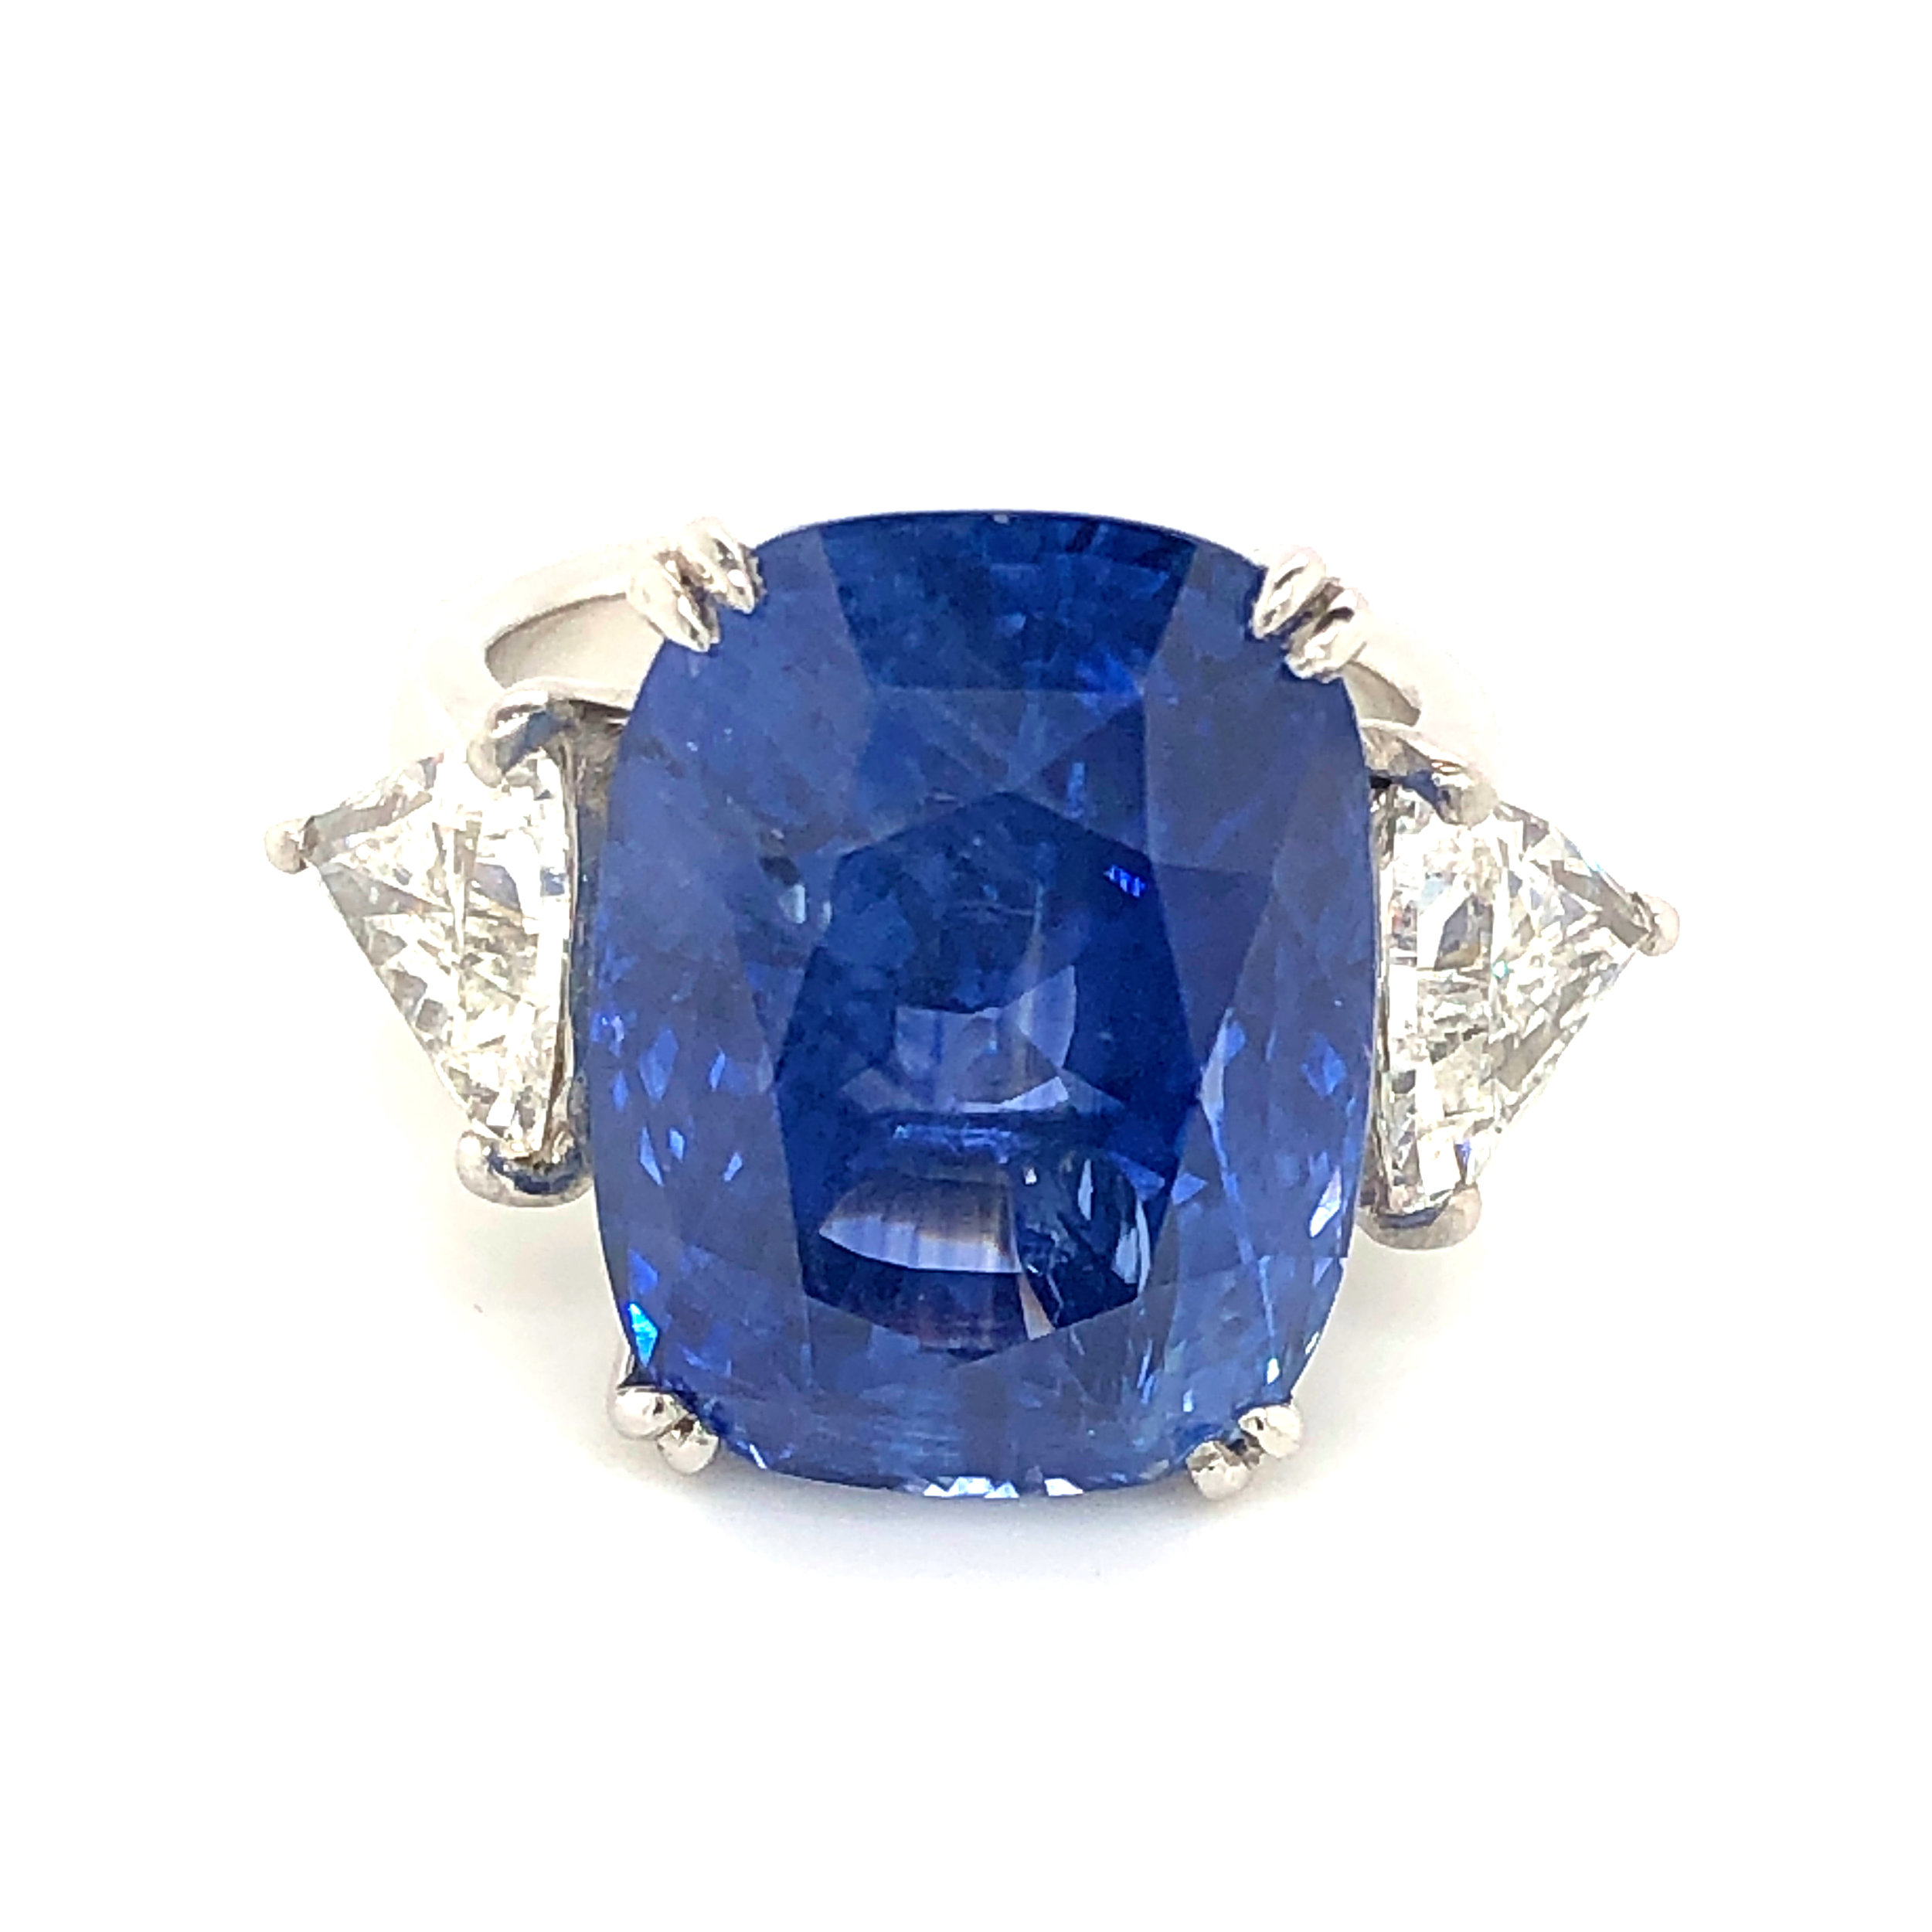 Important 20ct Certified Sapphire Ring with Diamonds, 14kt White Gold  Est. US$ 18,000-25,000